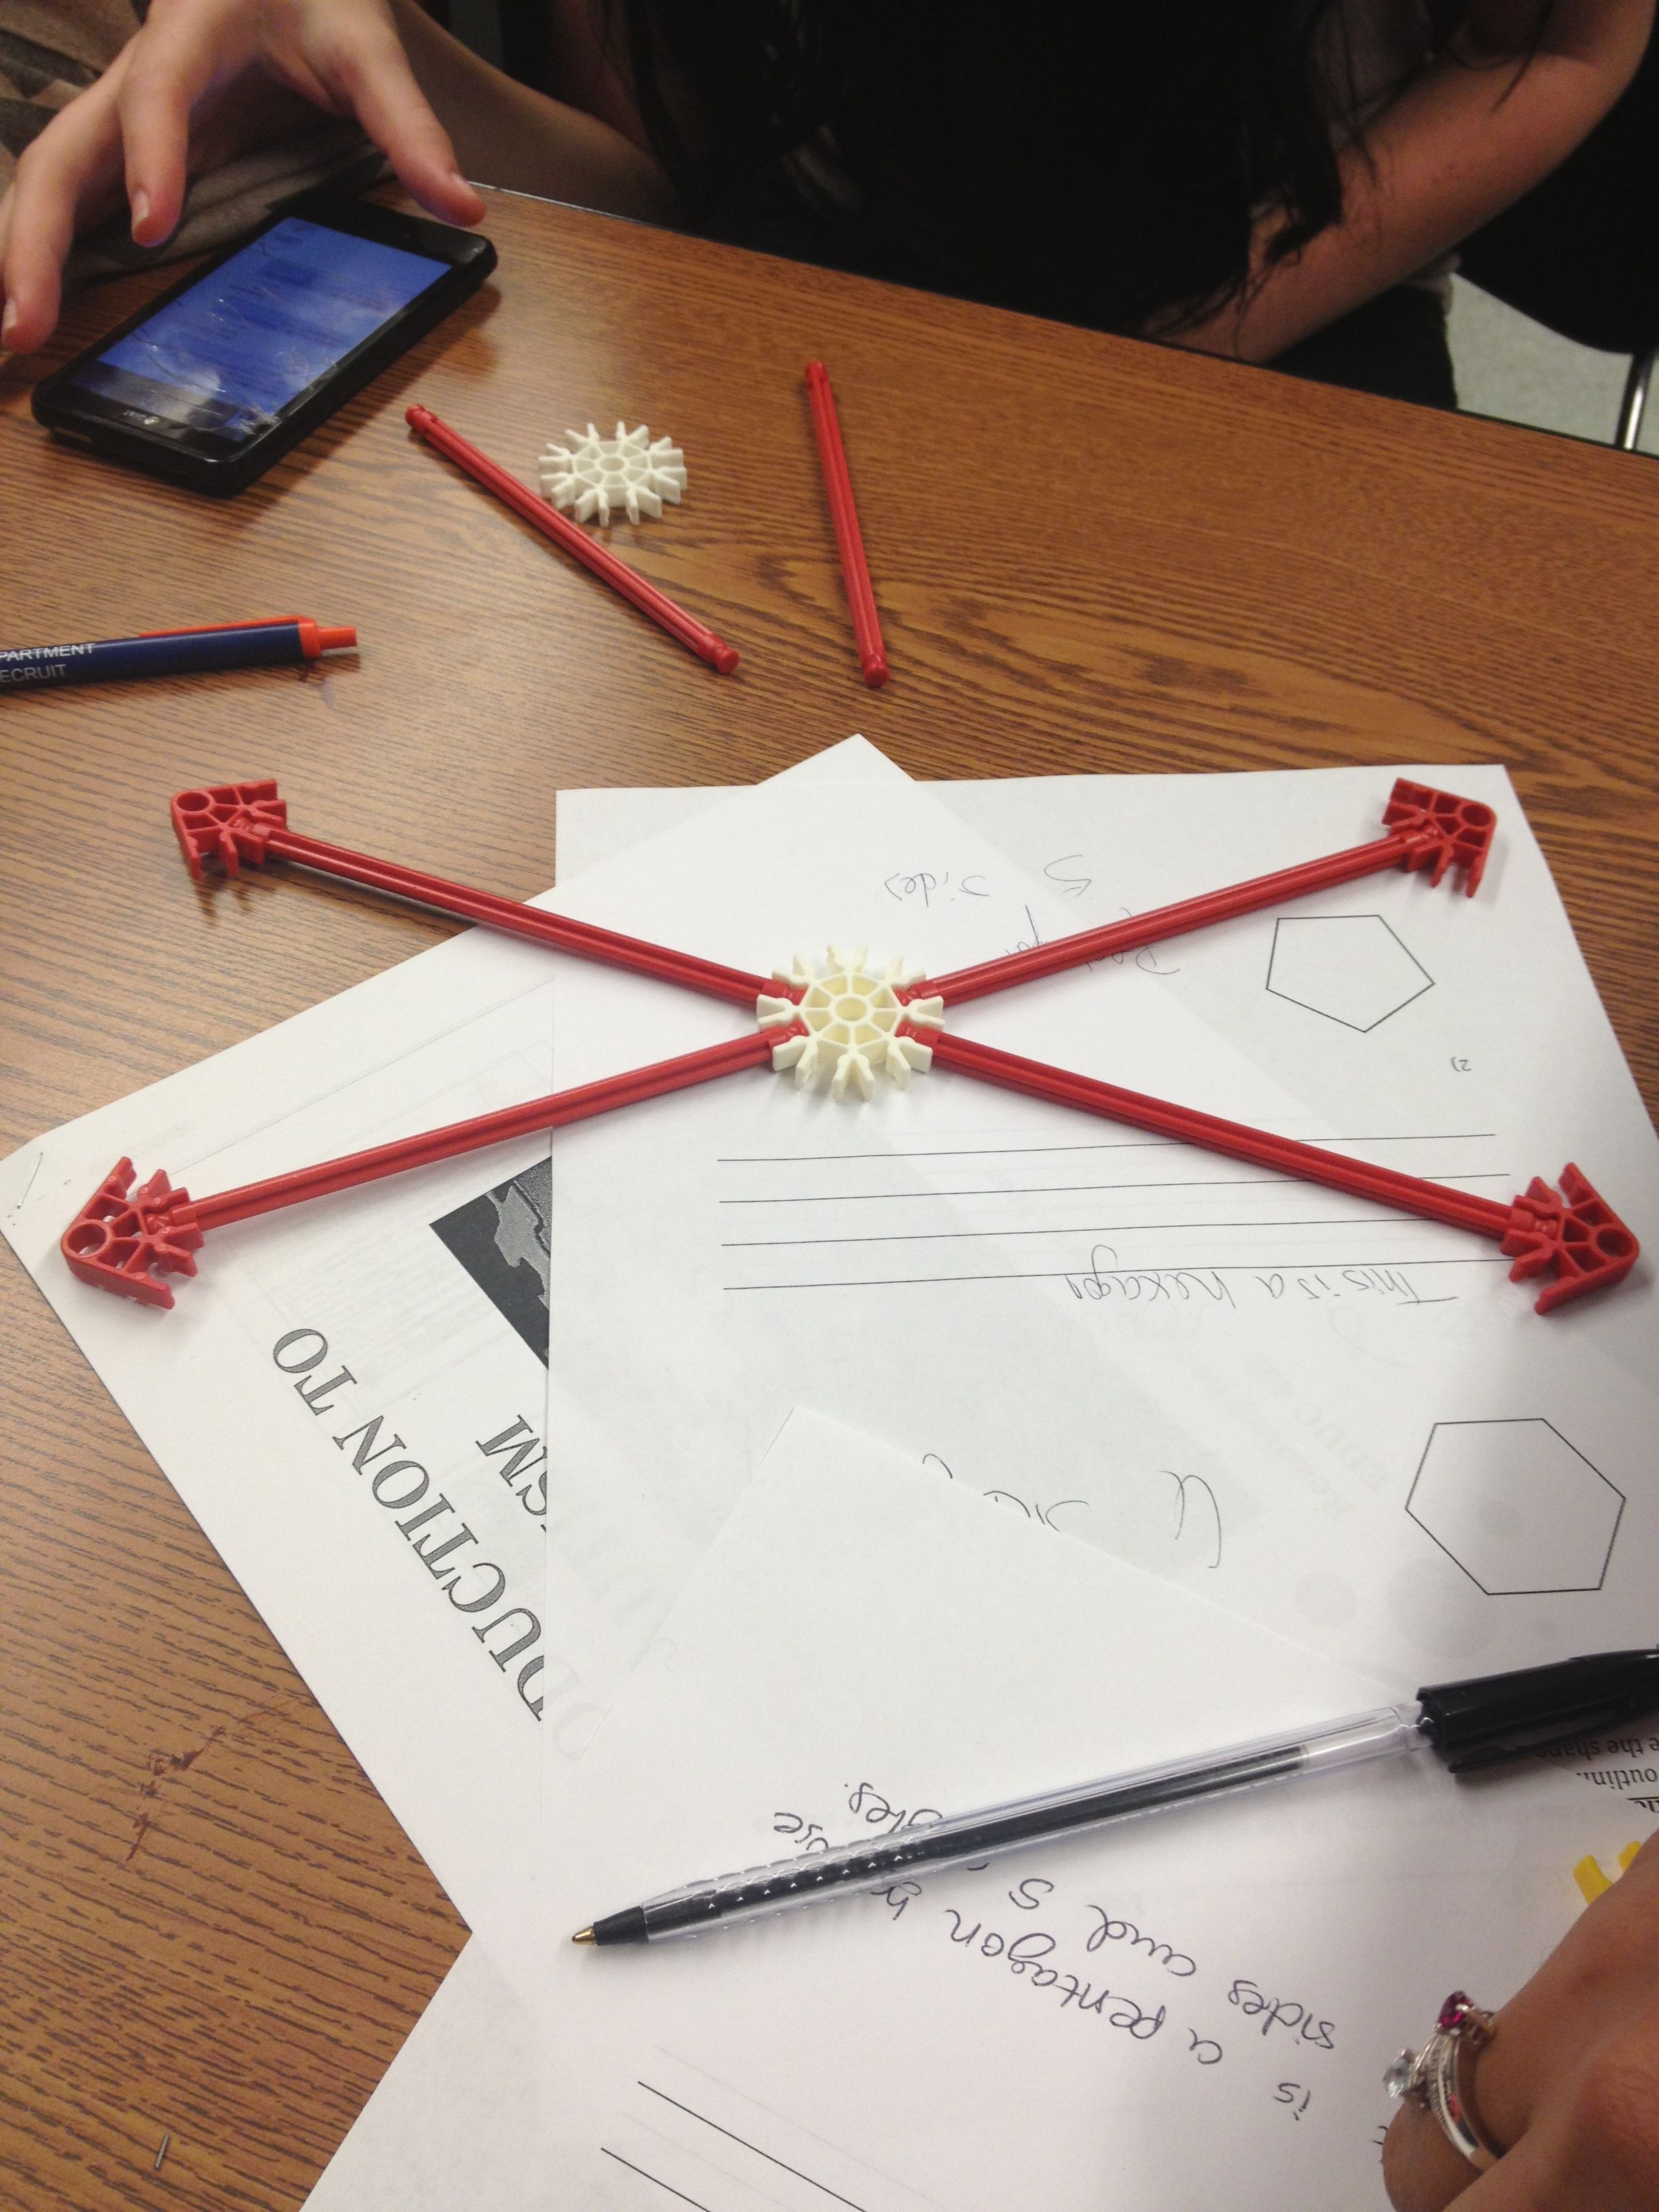 Fun With Kinects Nys Common Core Mathematics